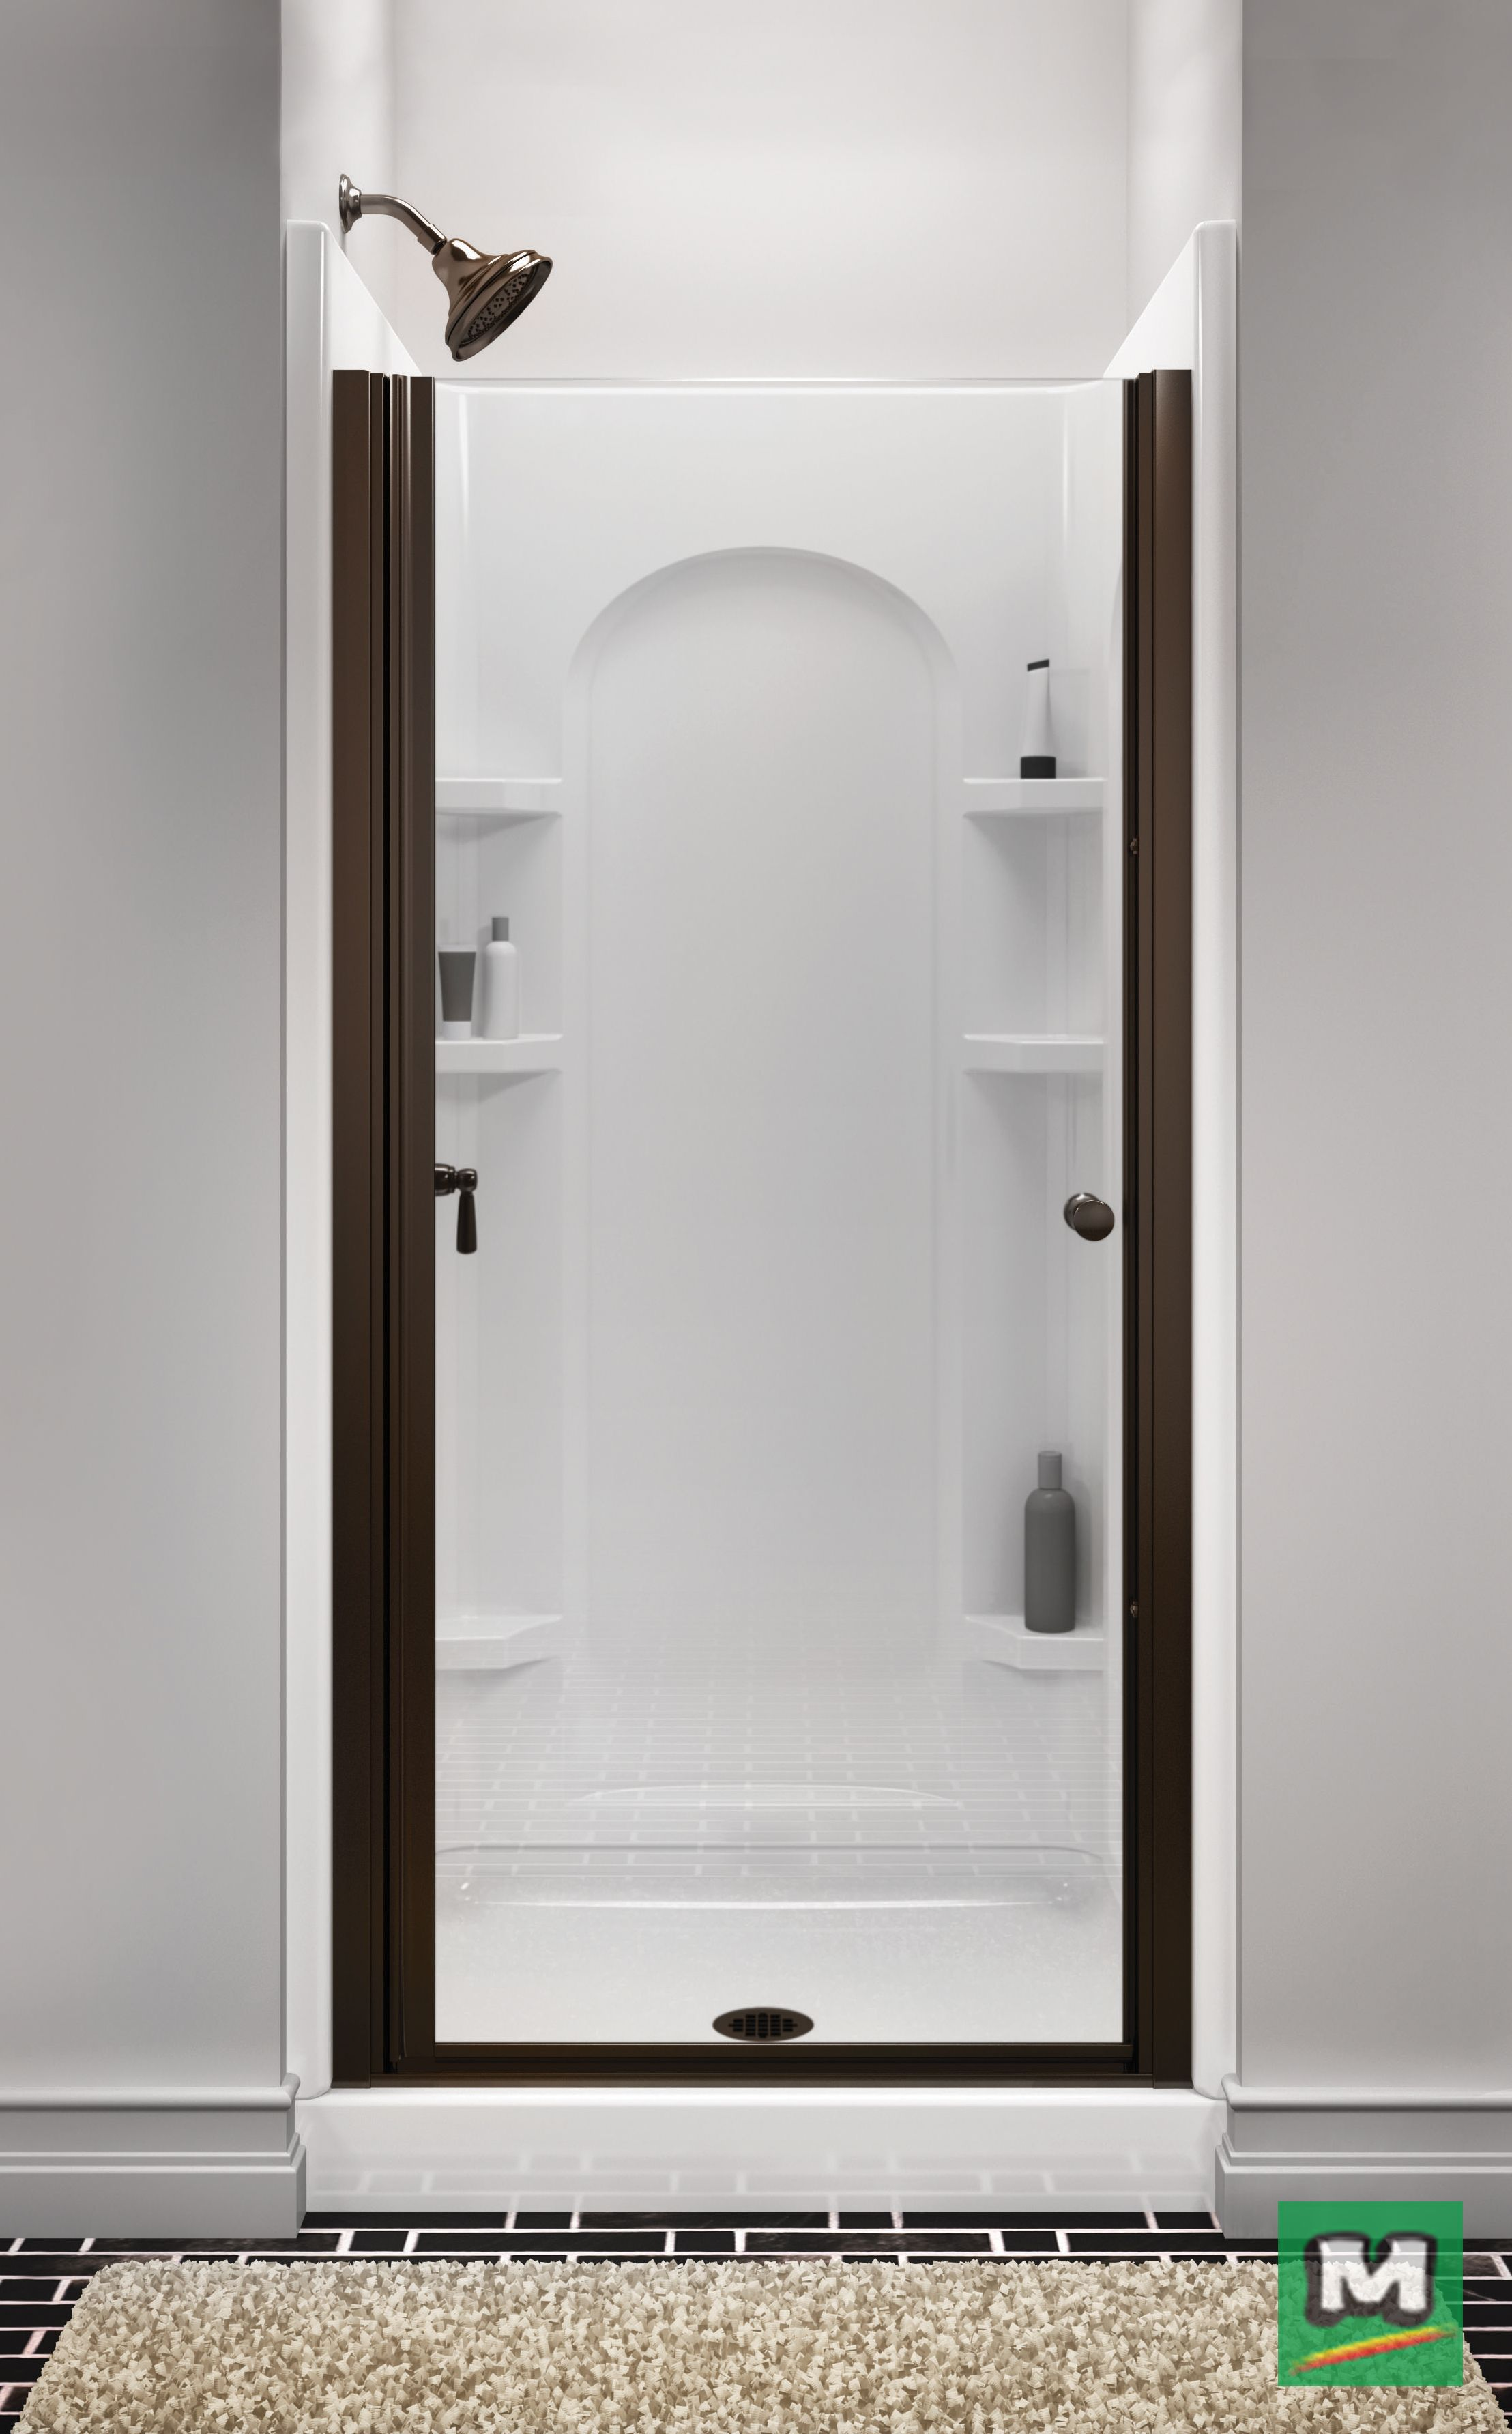 The Sterling Finesse Frameless Hinge Shower Door Offers Long